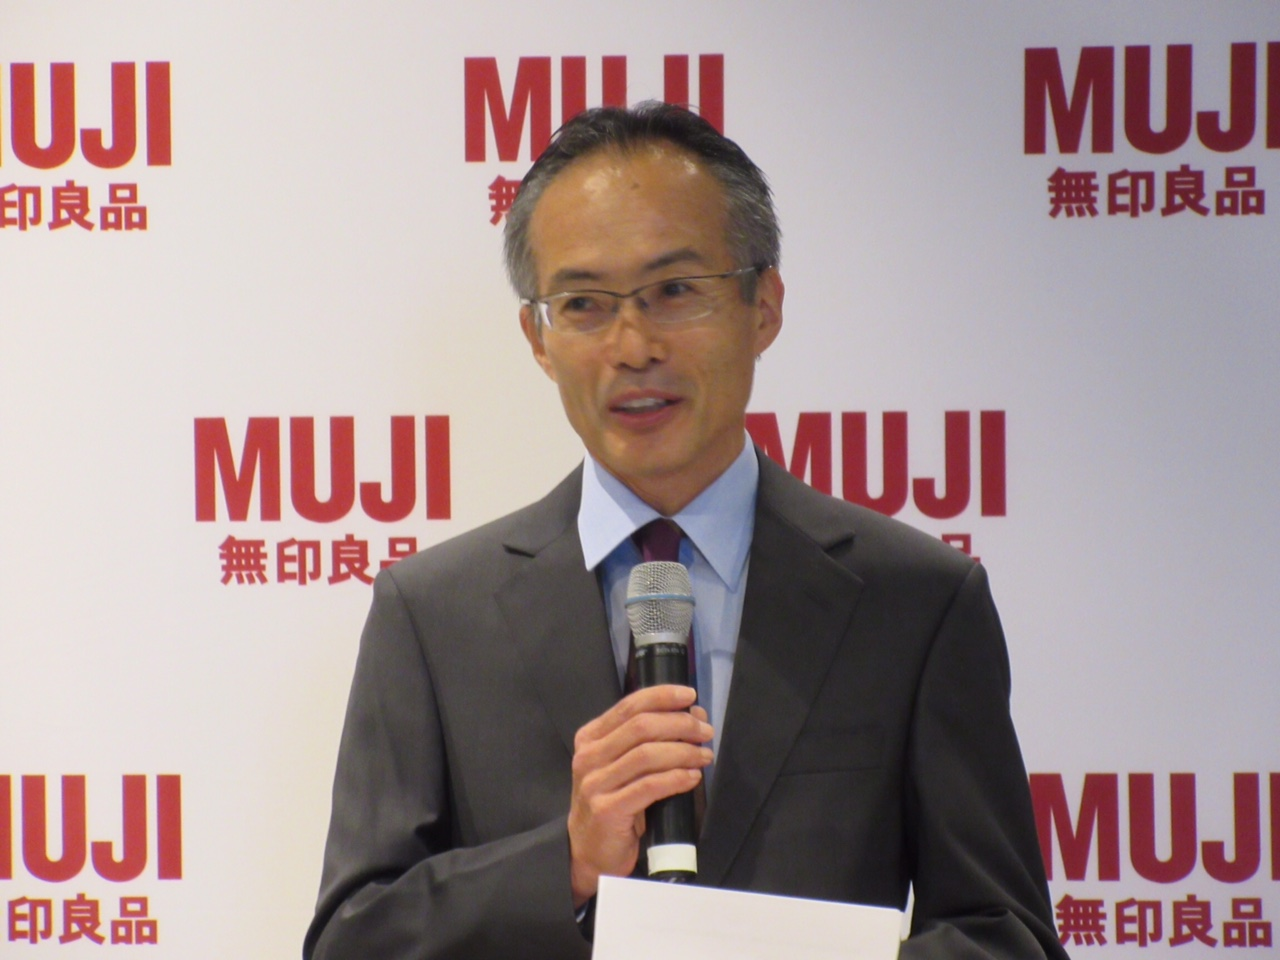 MUJI Sydney - Official Opening Ceremony 2